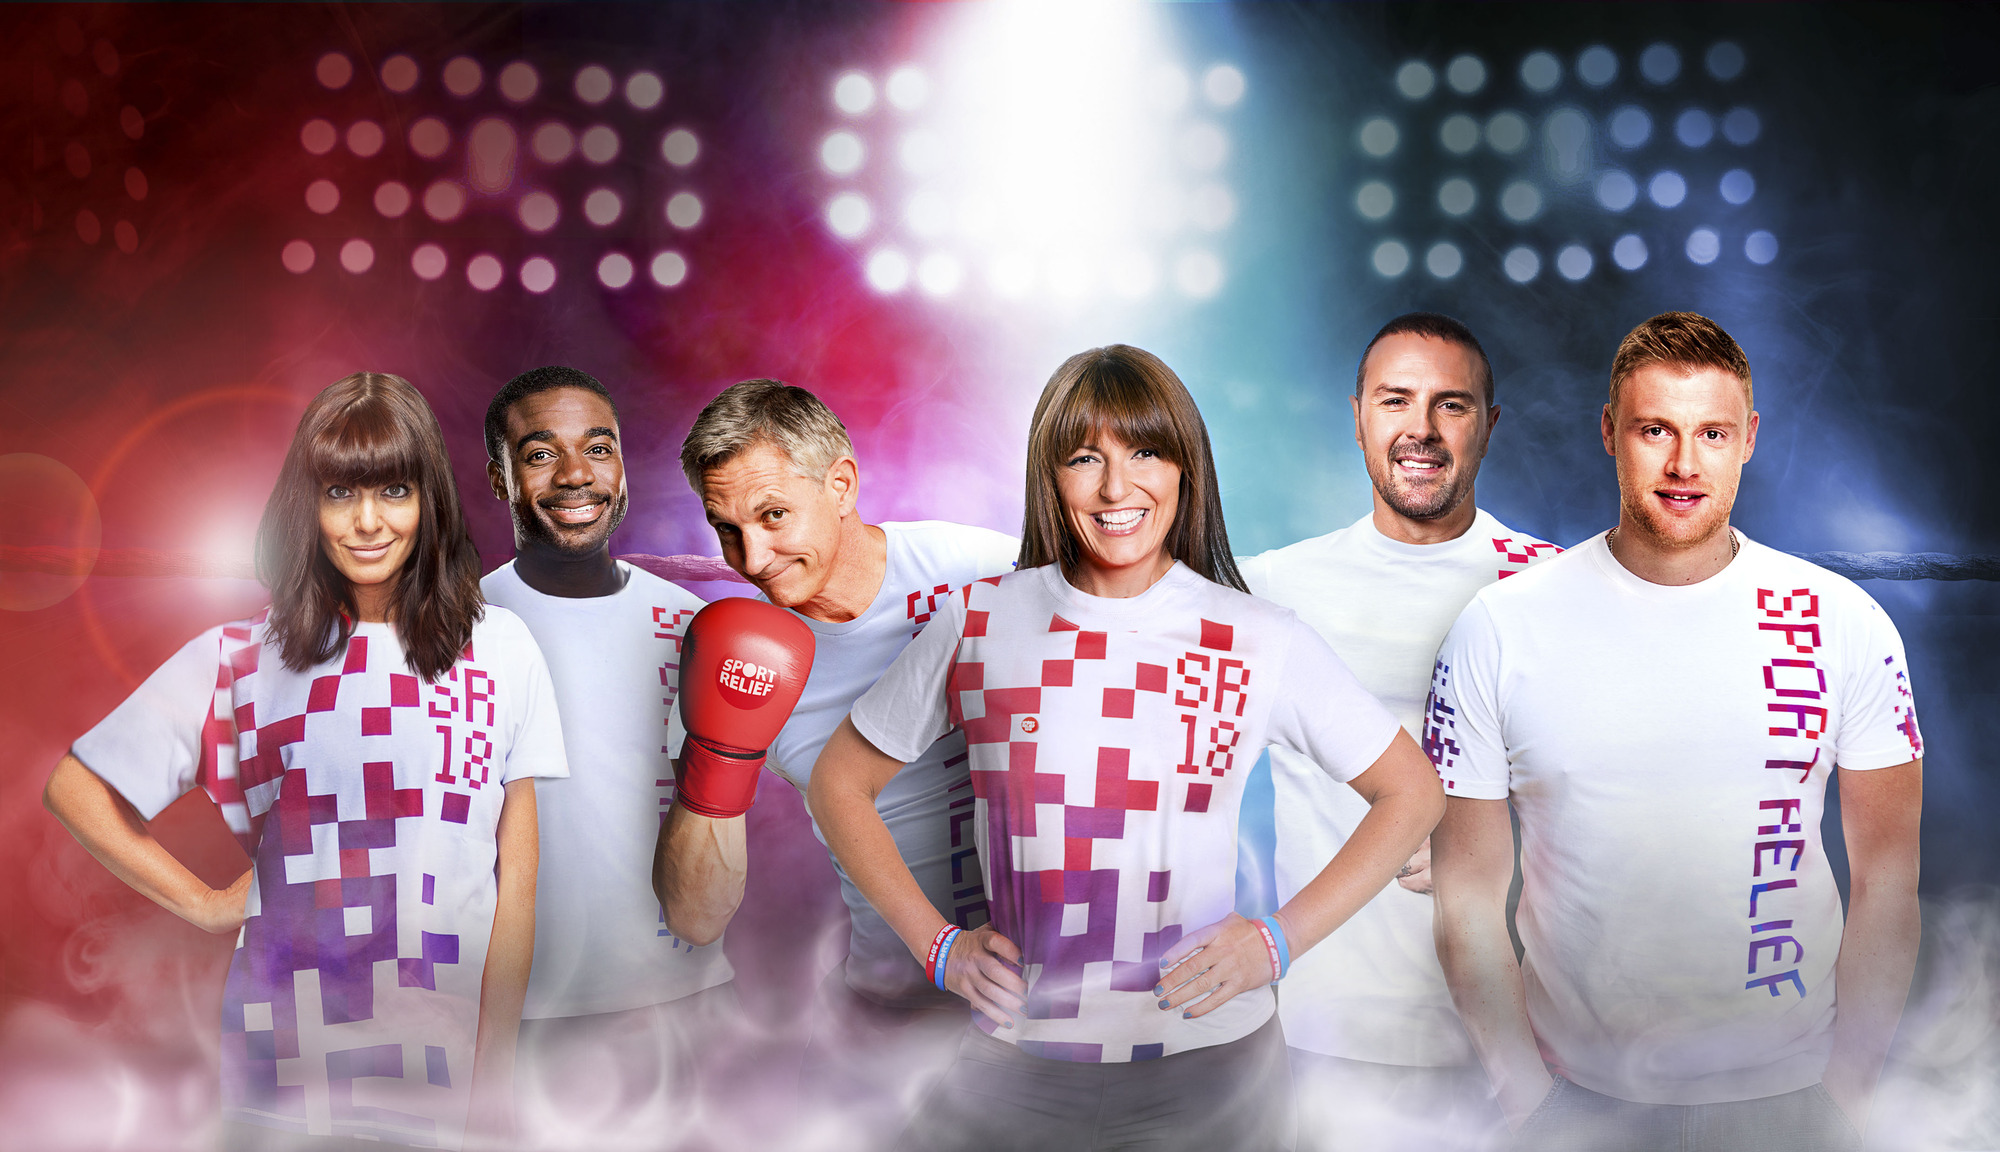 Programme Name: Sport Relief 2018 - TX: 23/03/2018 - Episode: Generic (No. n/a) - Picture Shows:  Claudia Winkleman, Ore Oduba, Gary Lineker, Davina McCall, Paddy McGuinness, Freddie Flintoff - (C) BBC - Photographer: N/A